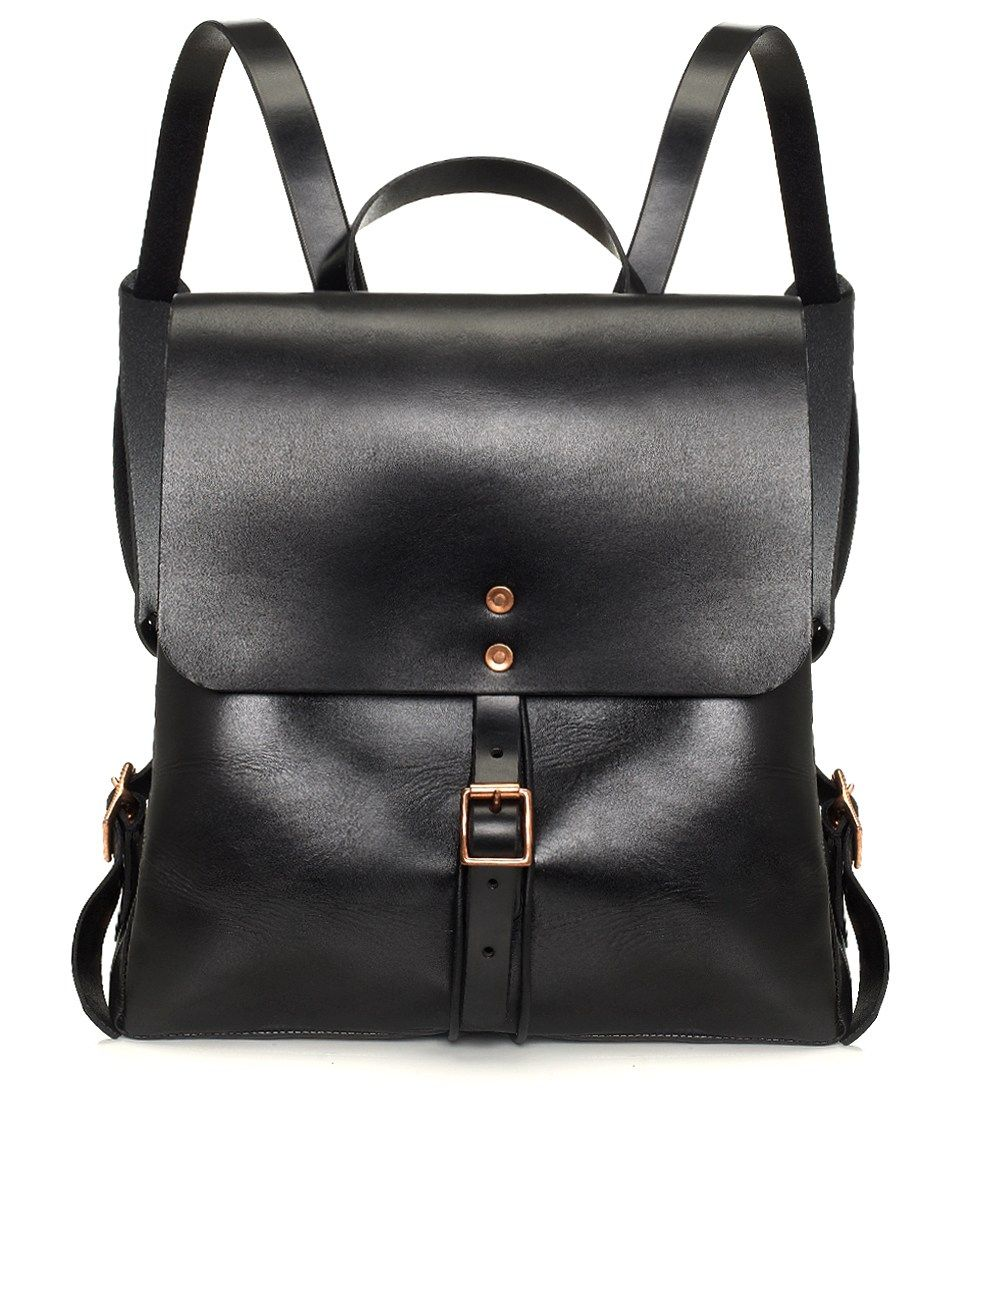 Black Leather Medium Backpack | Alfie Douglas | Avenue32 ...